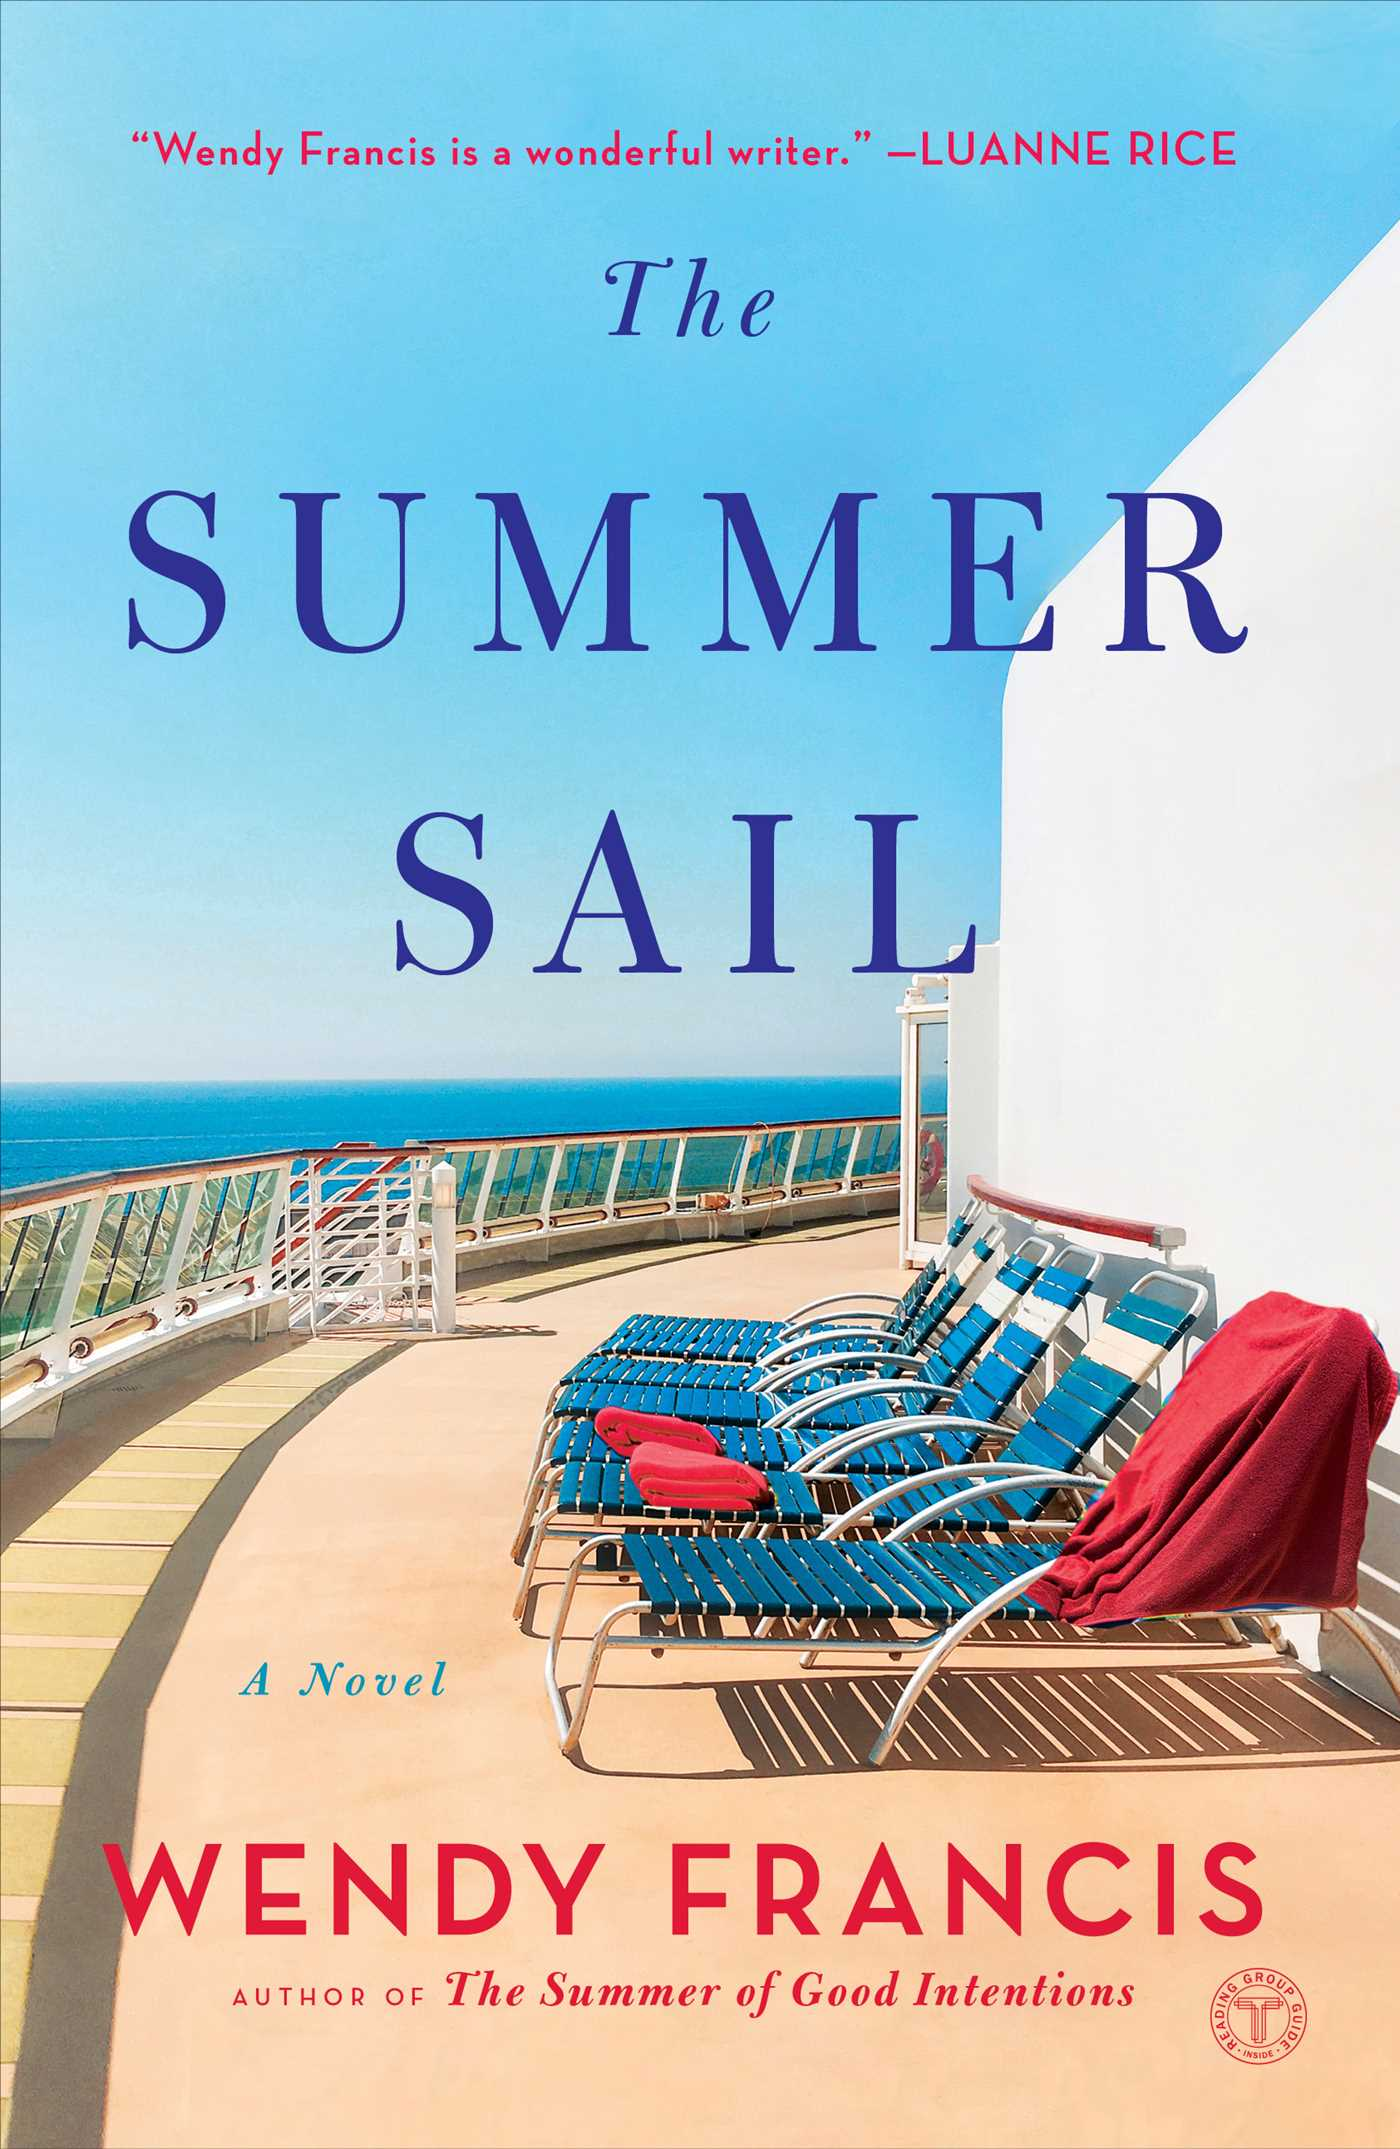 Book Cover Image (jpg): The Summer Sail